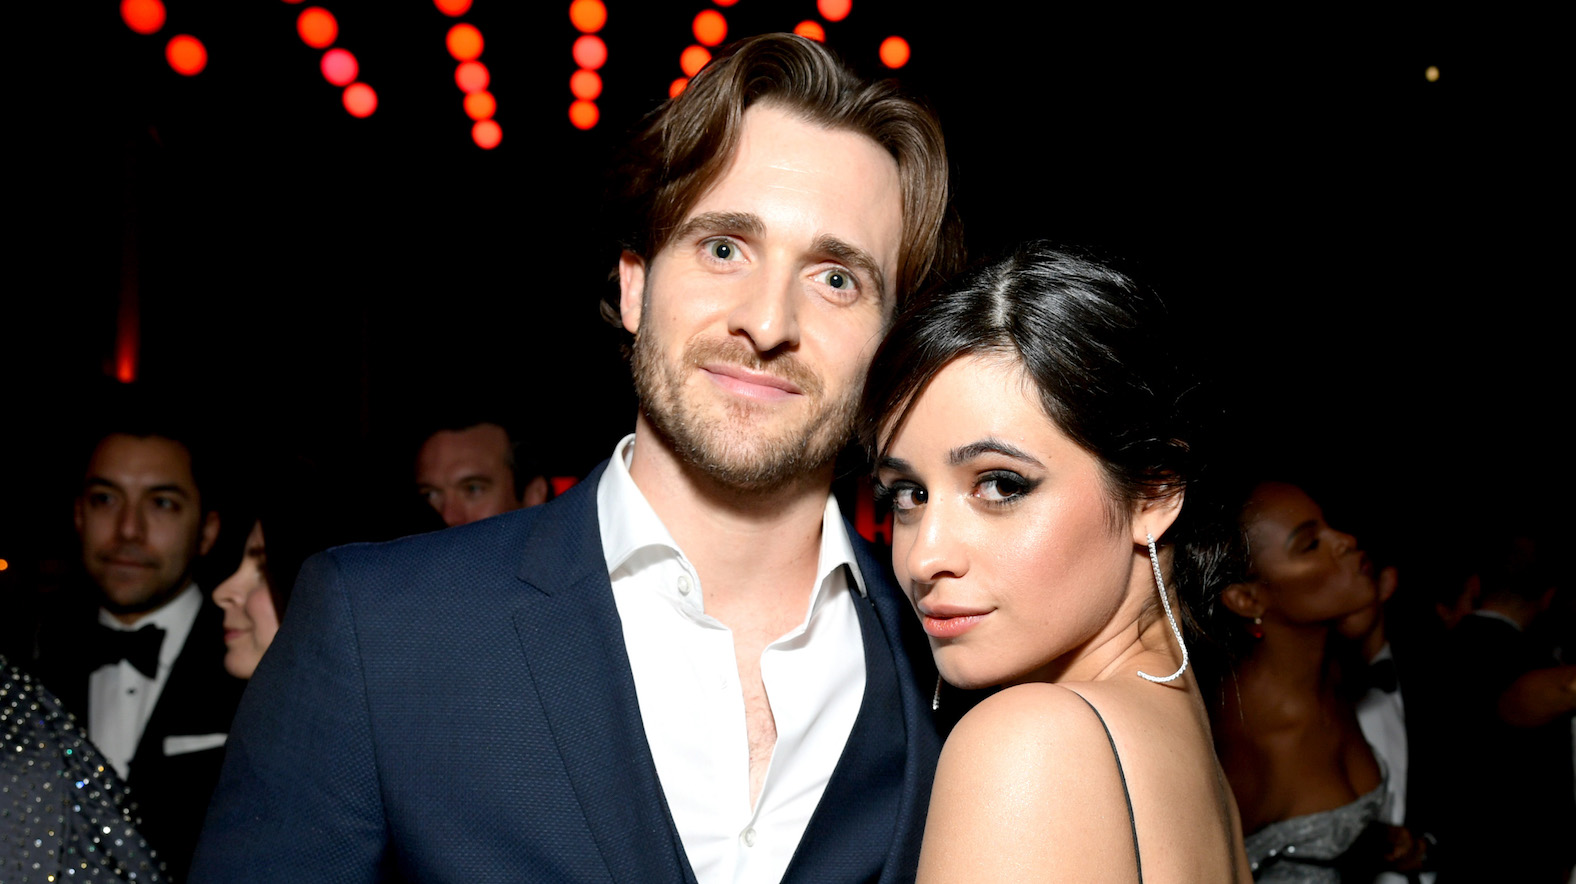 Why Did Camila Cabello and Matthew Hussey Break Up? They Split